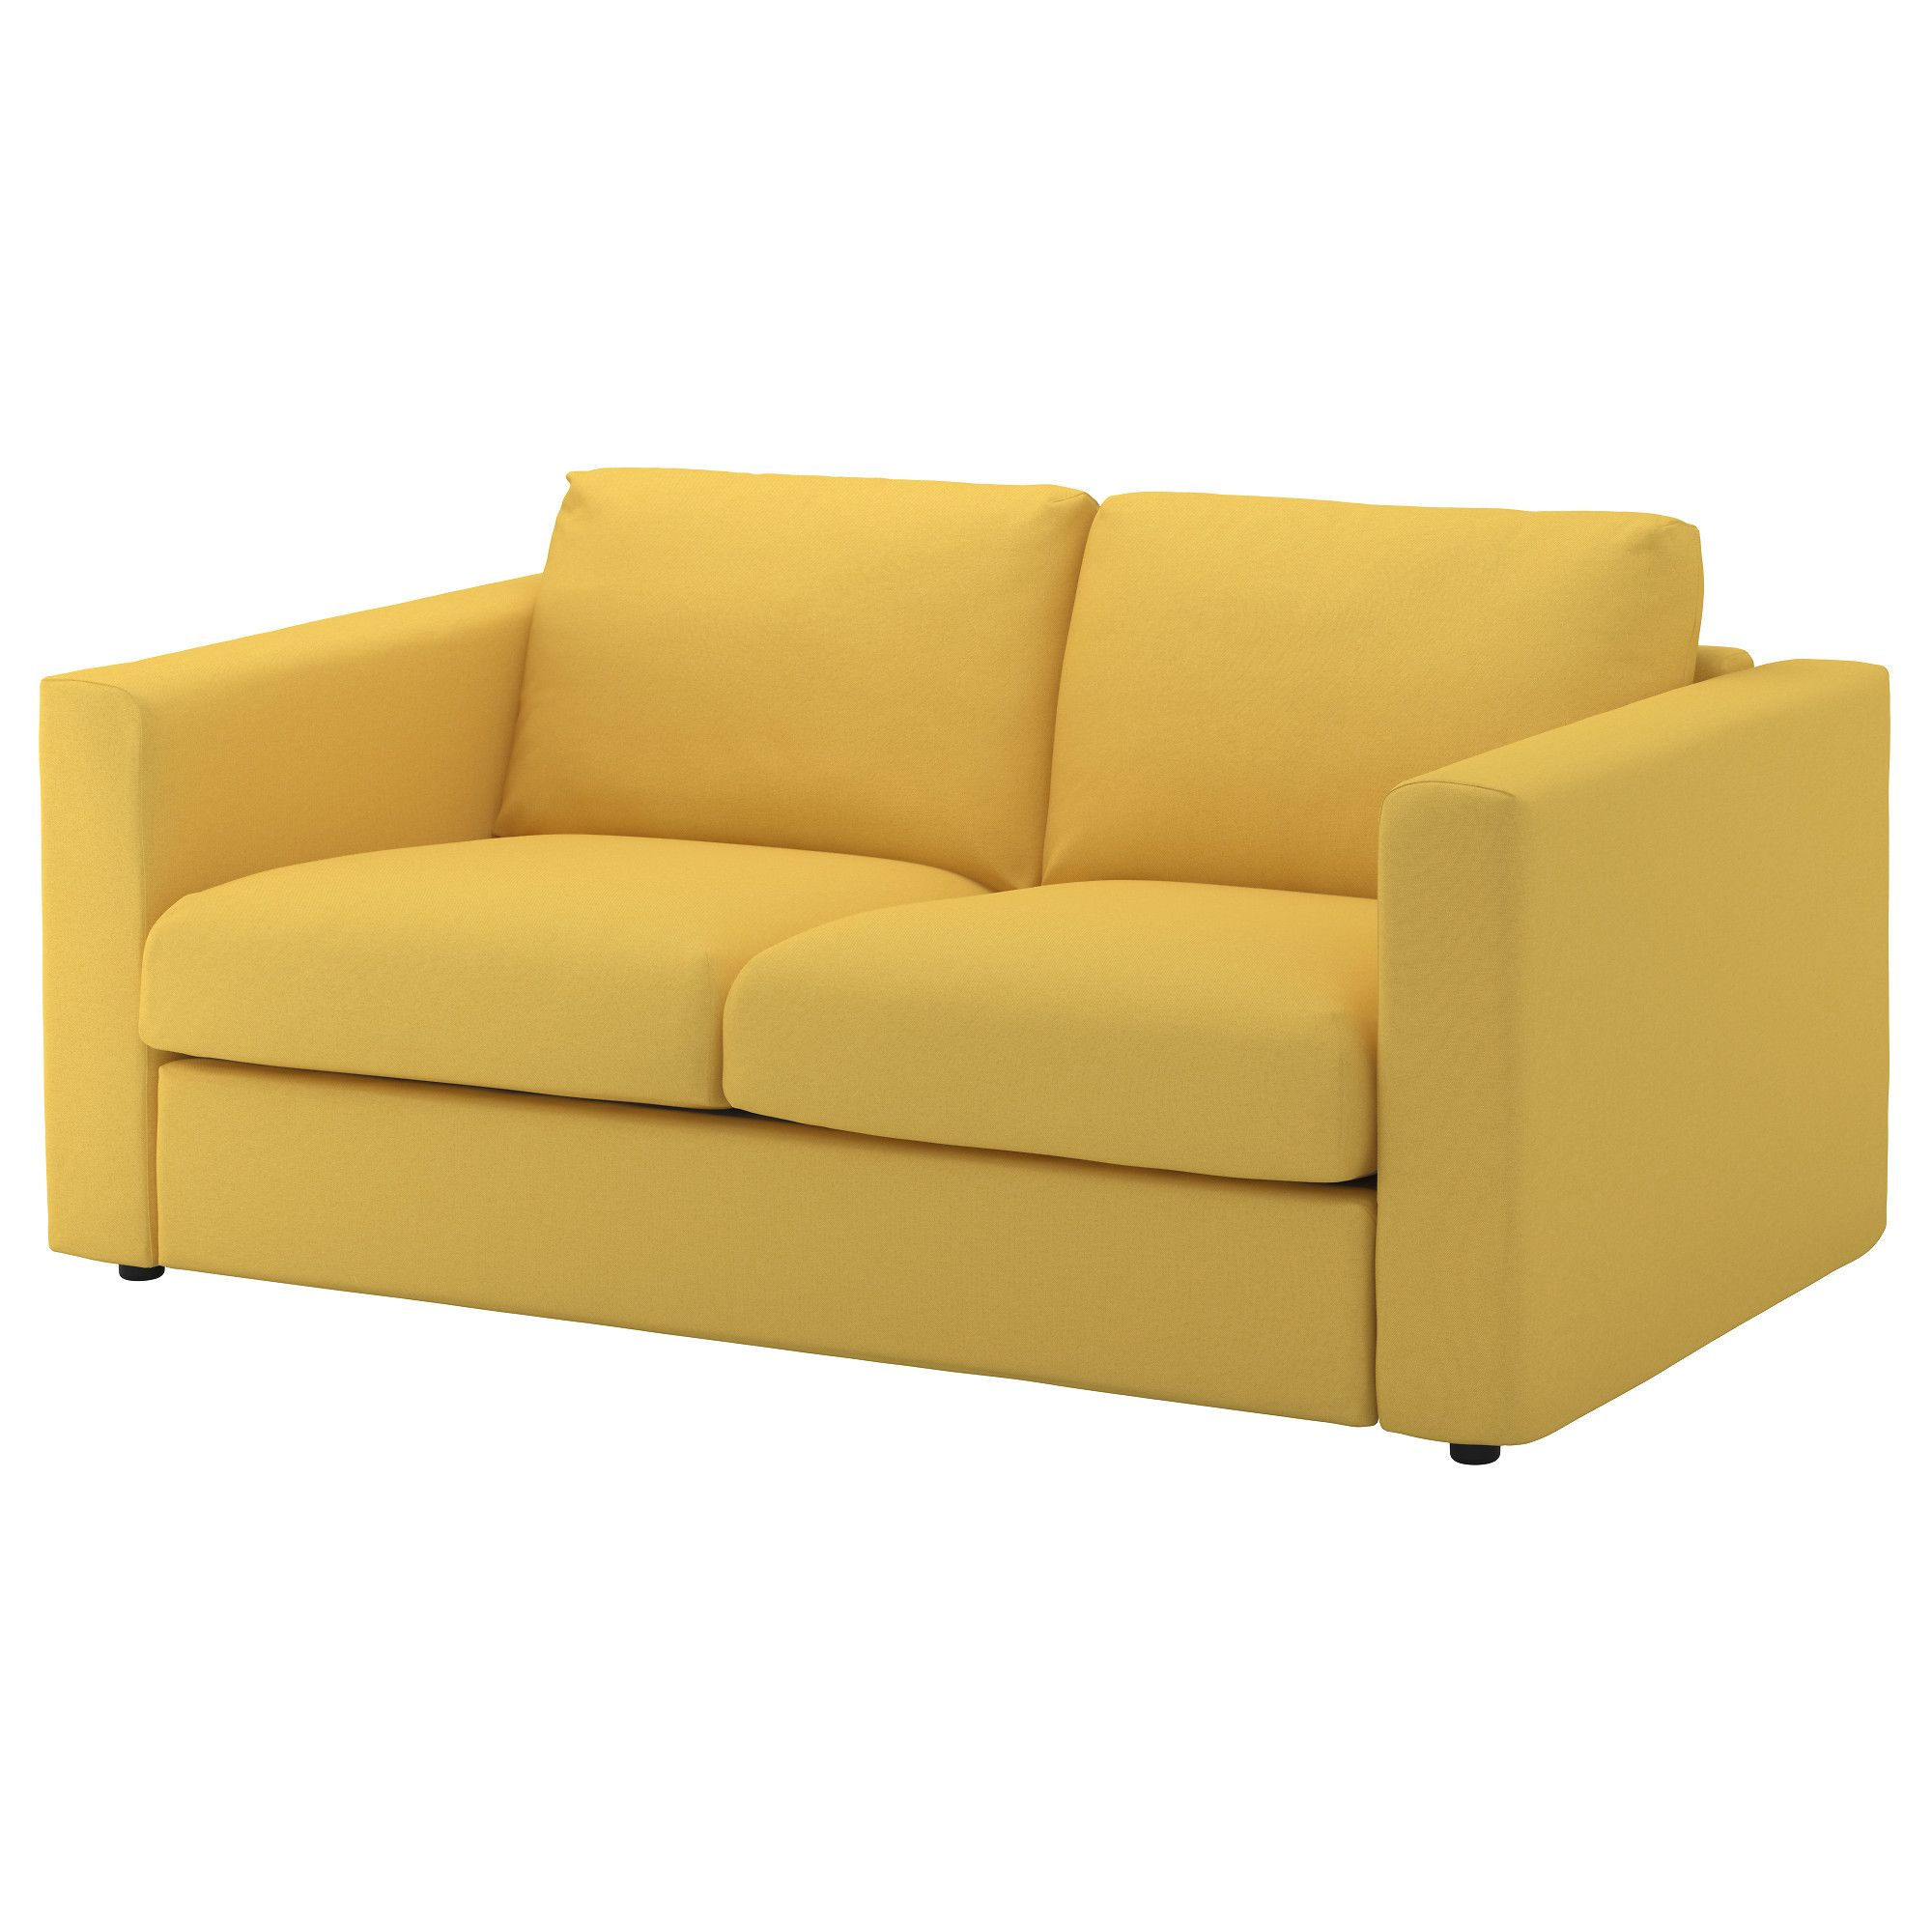 Furniture & Home Furnishings - Find Your Inspiration | Leather sofa and loveseat, Love seat, Sofa